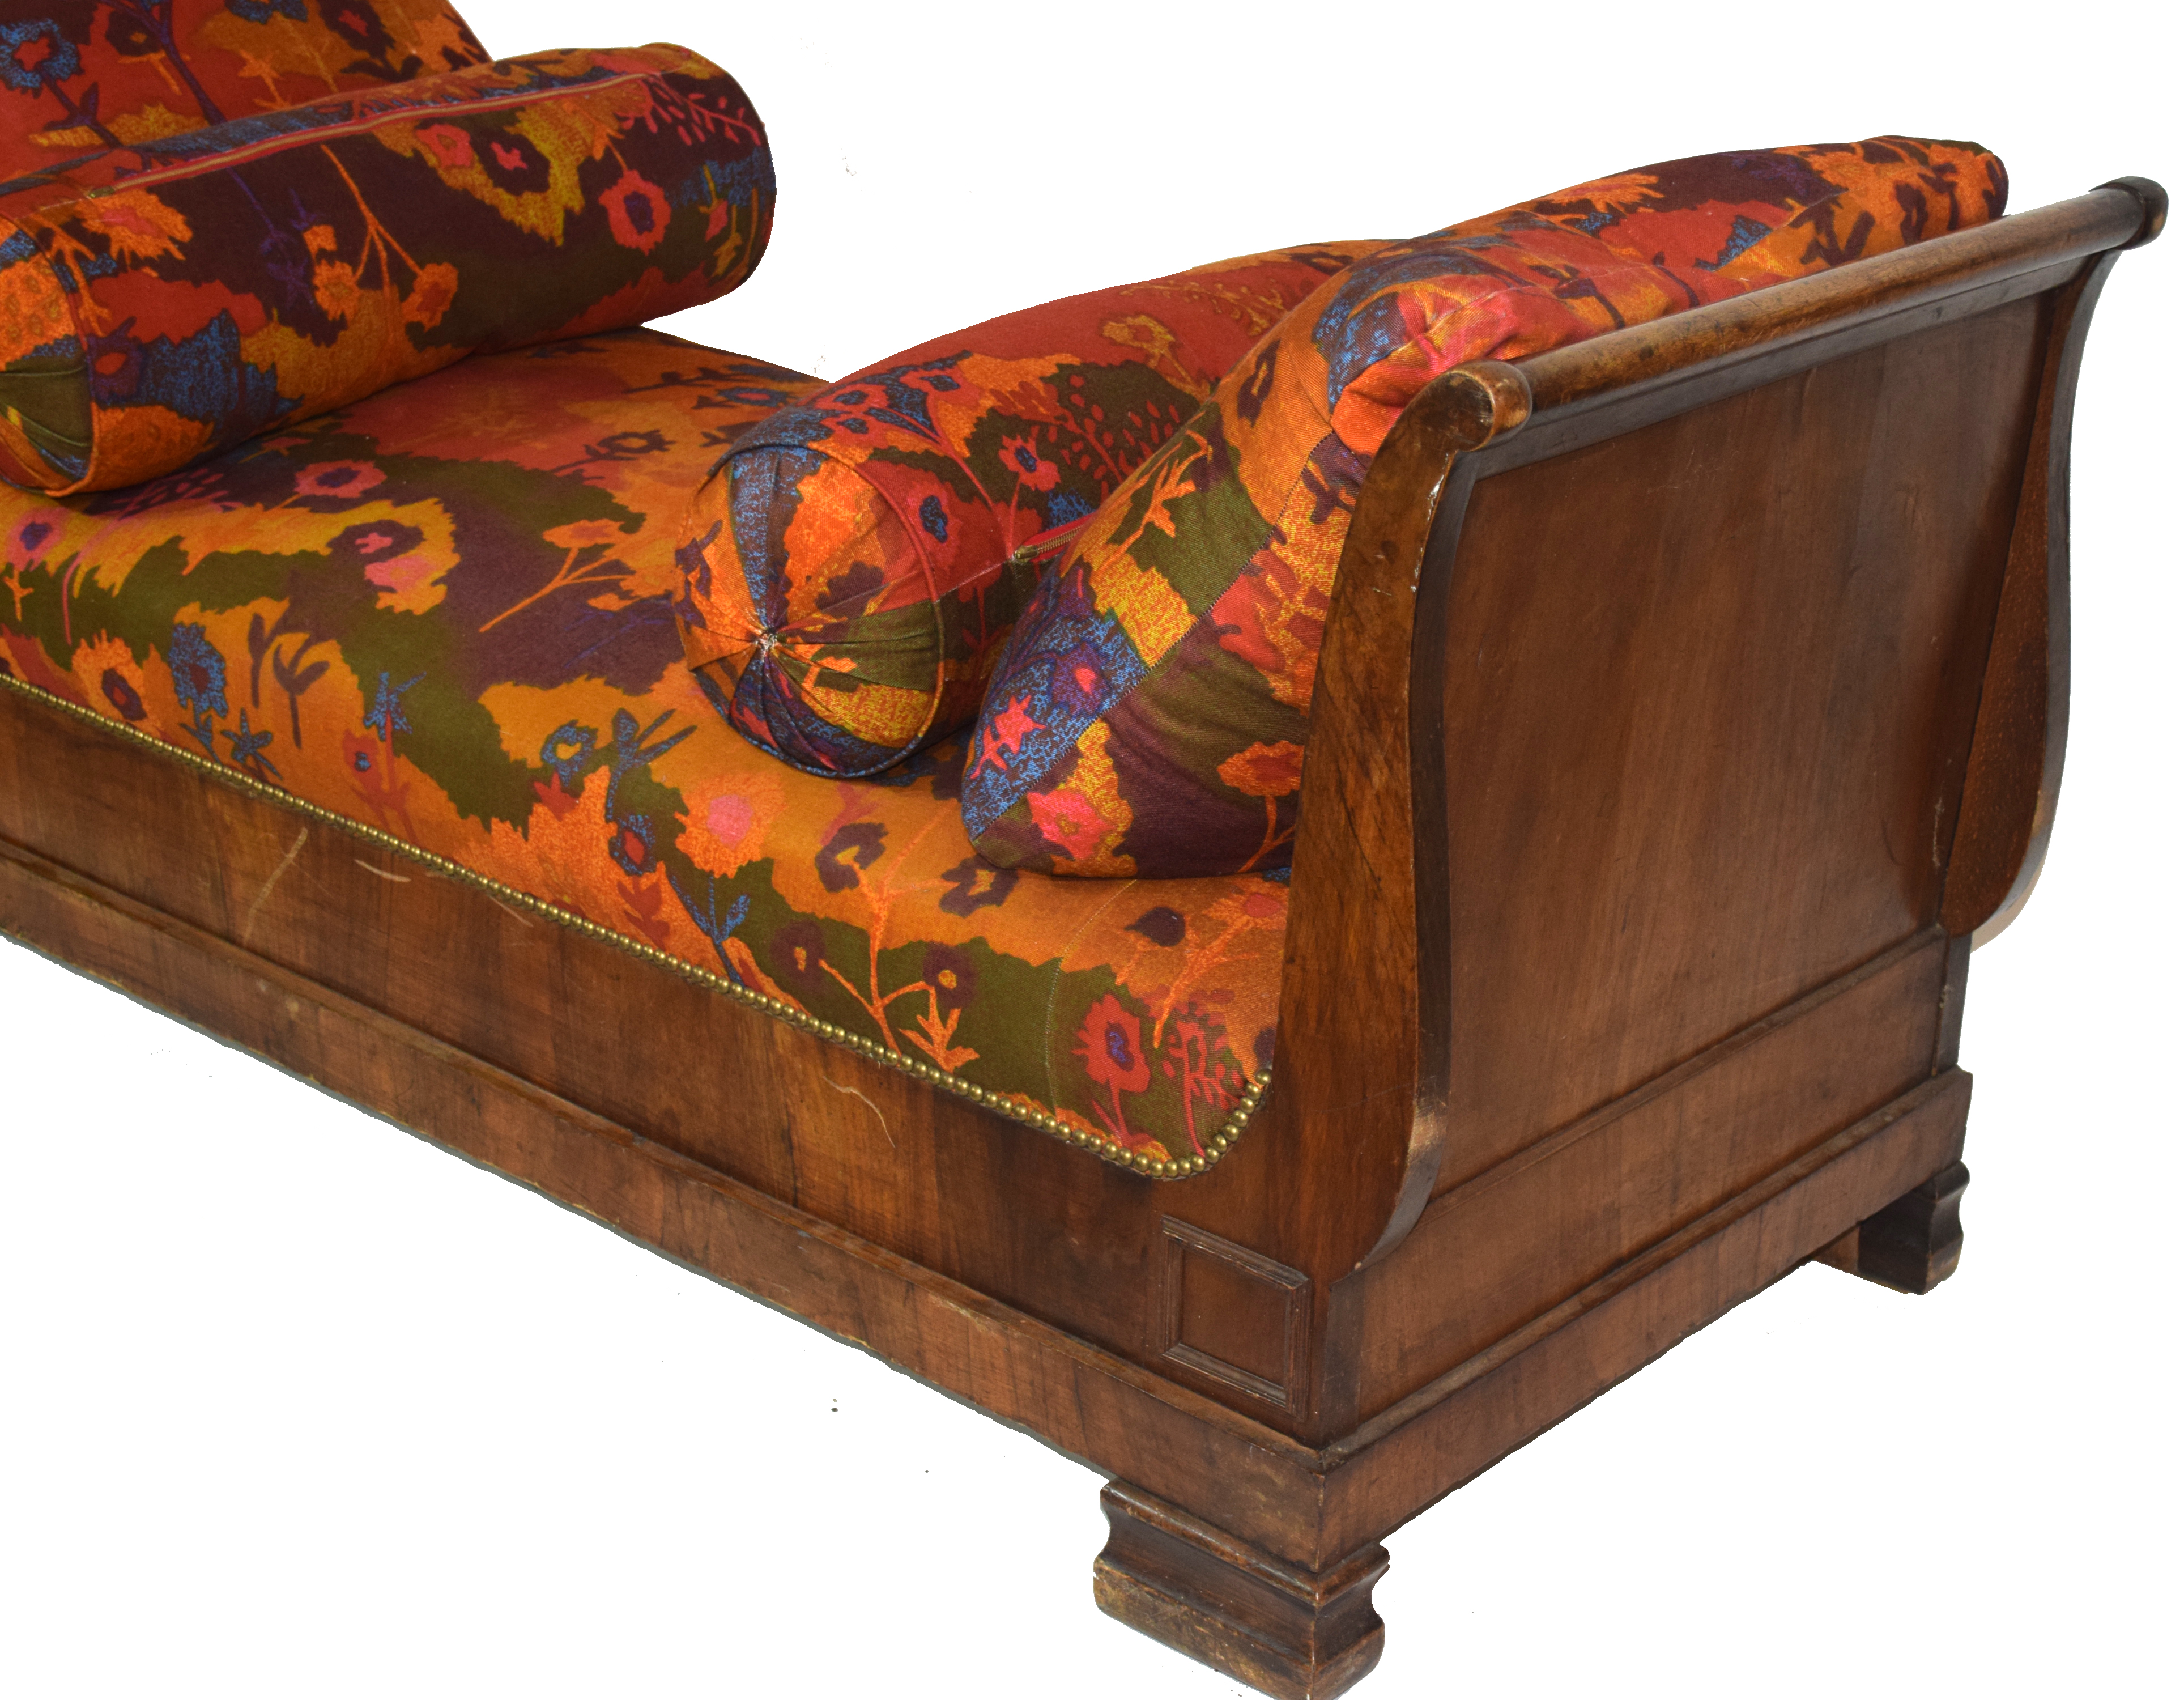 Late 19th century Continental side chair or chaise longue - Image 2 of 3